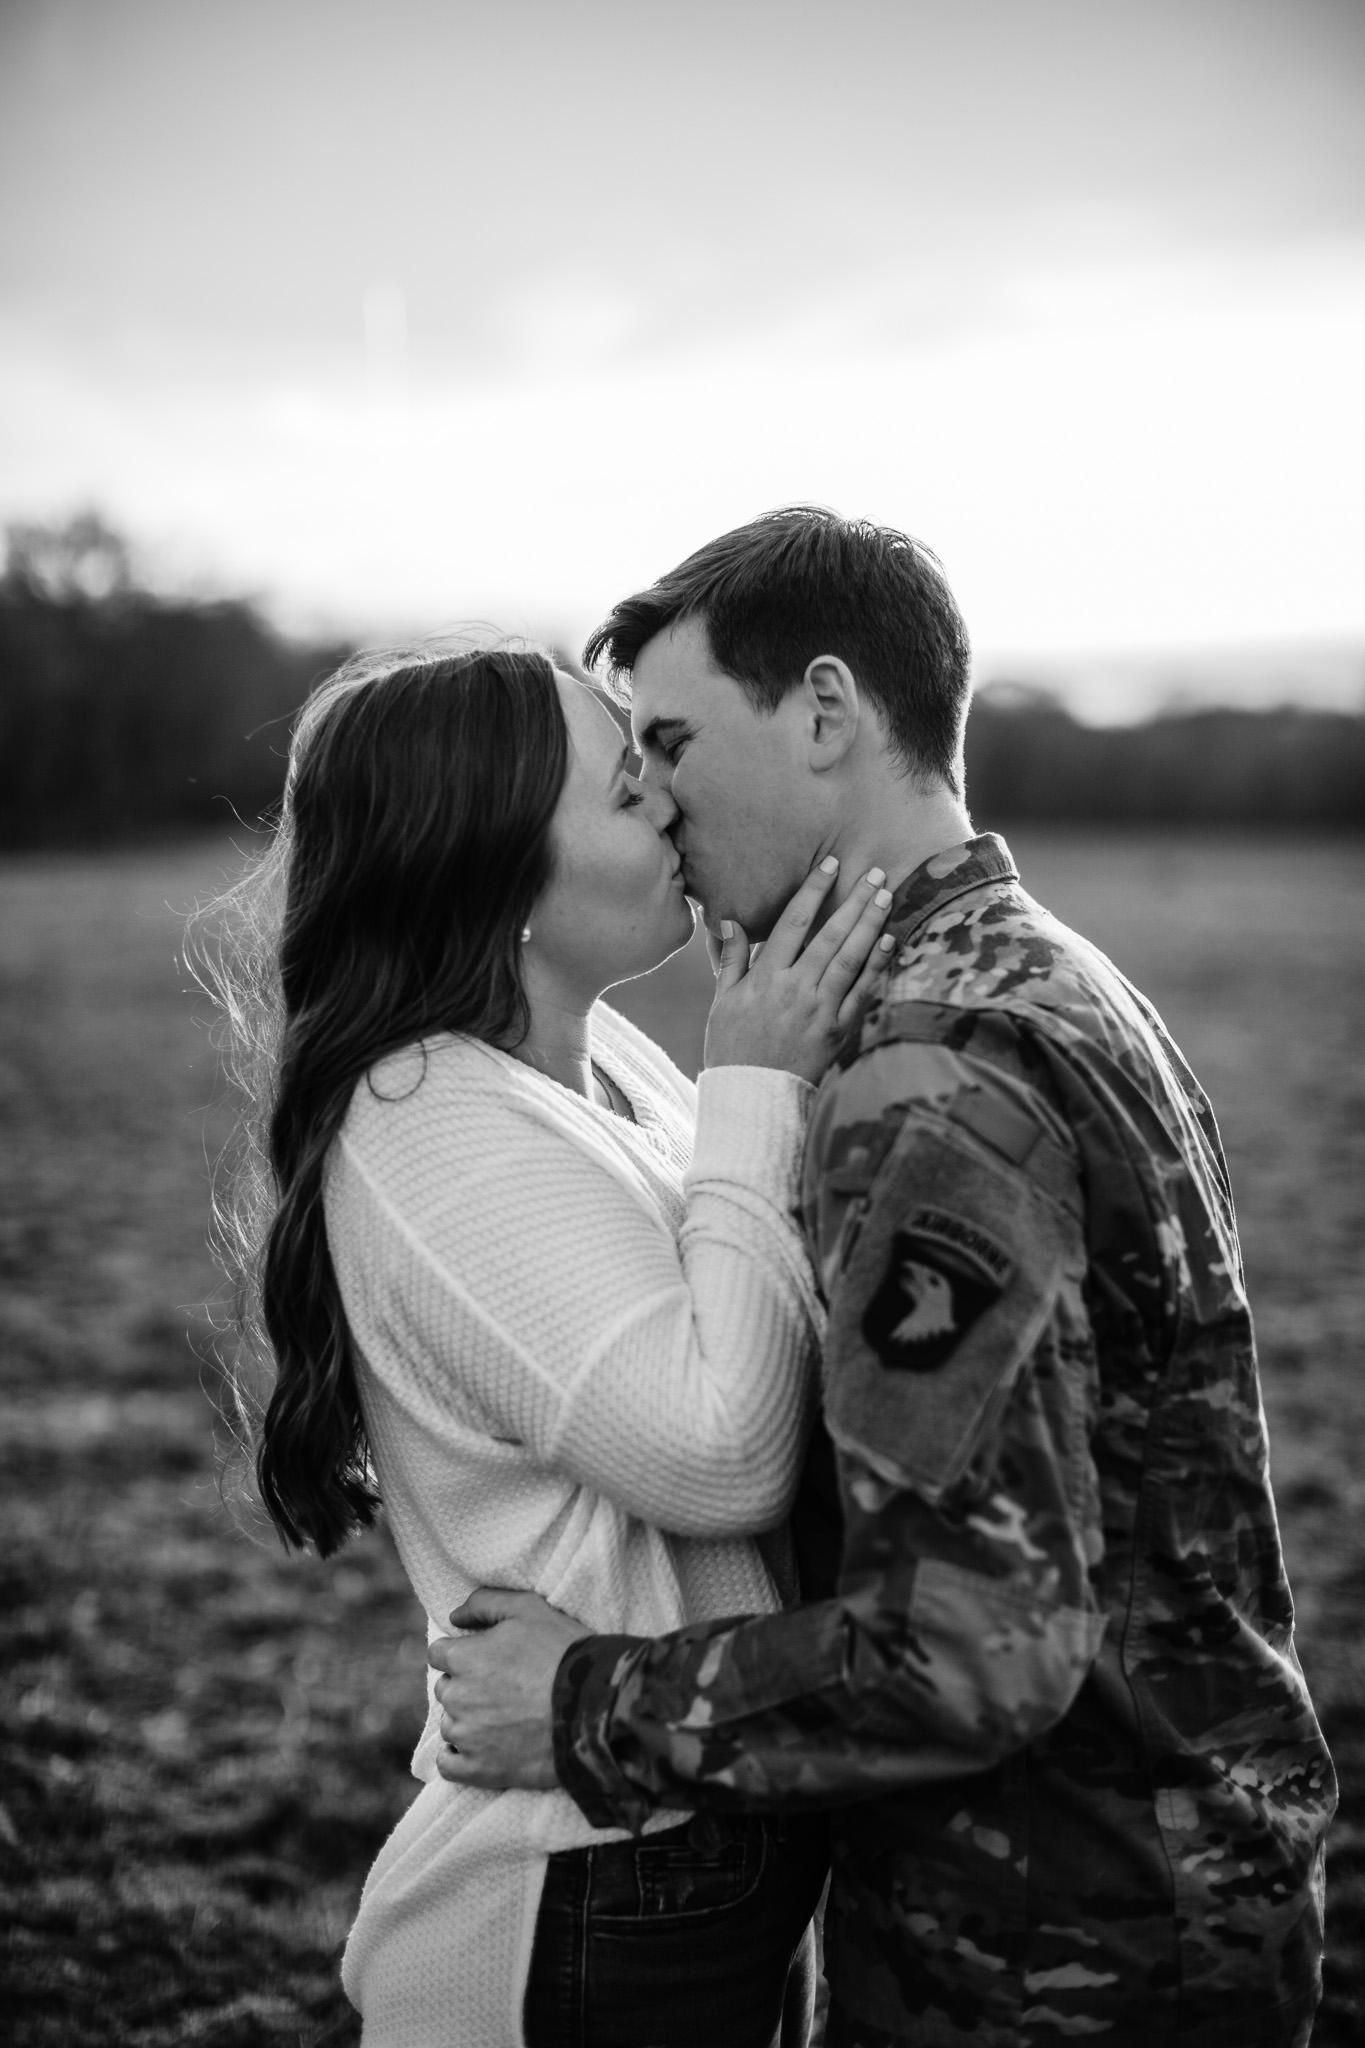 black and white photo of couple kissing with man in uniform